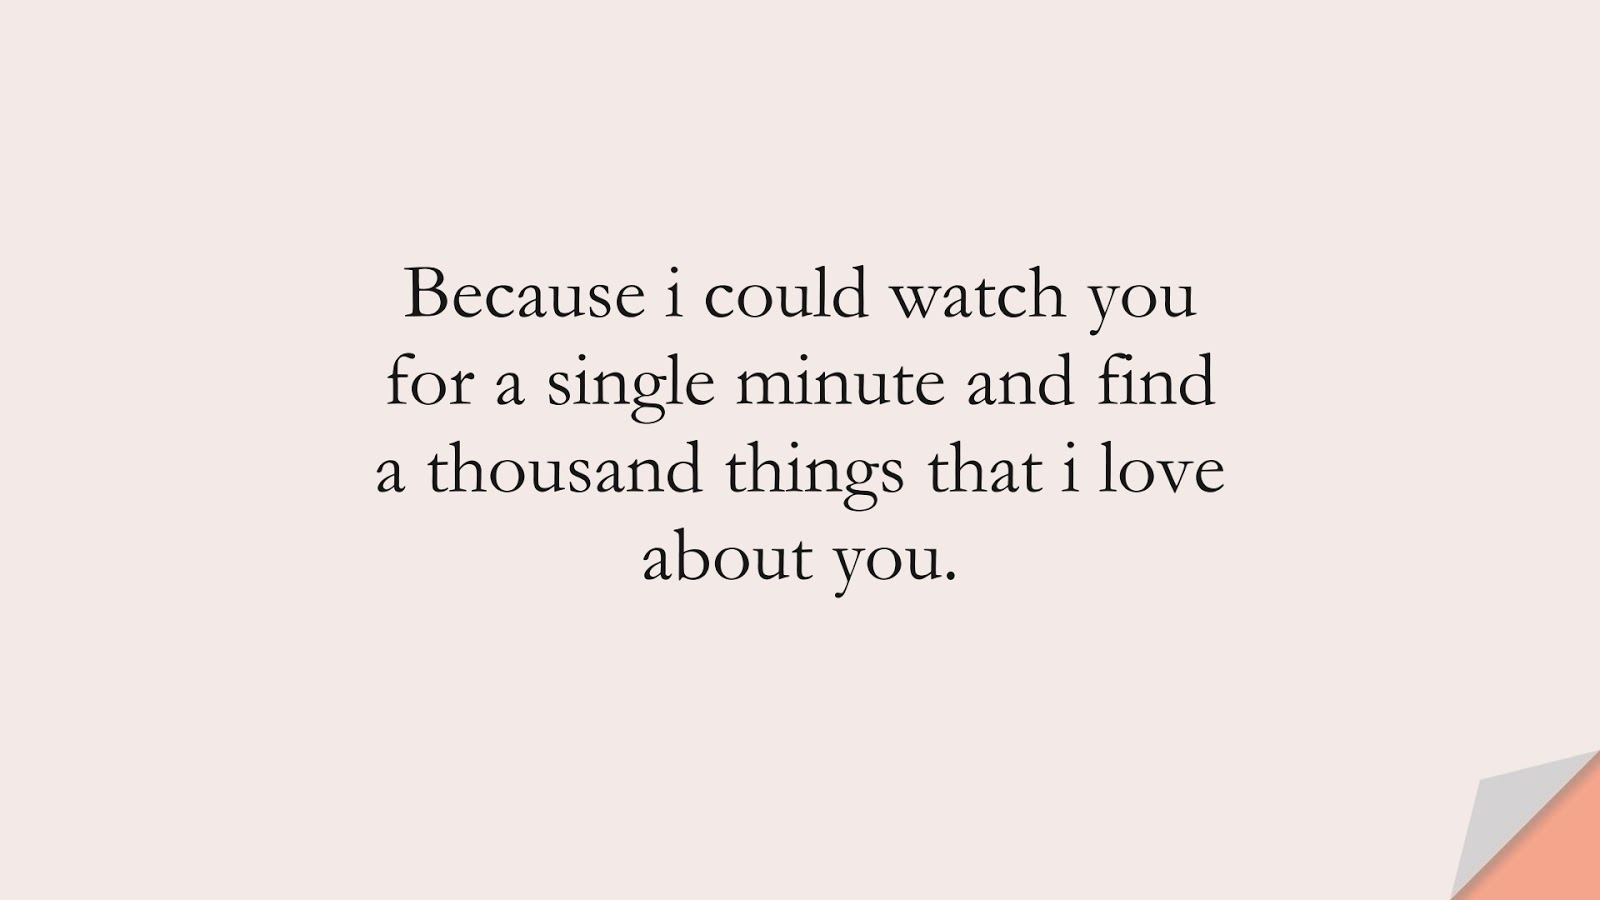 Because i could watch you for a single minute and find a thousand things that i love about you.FALSE